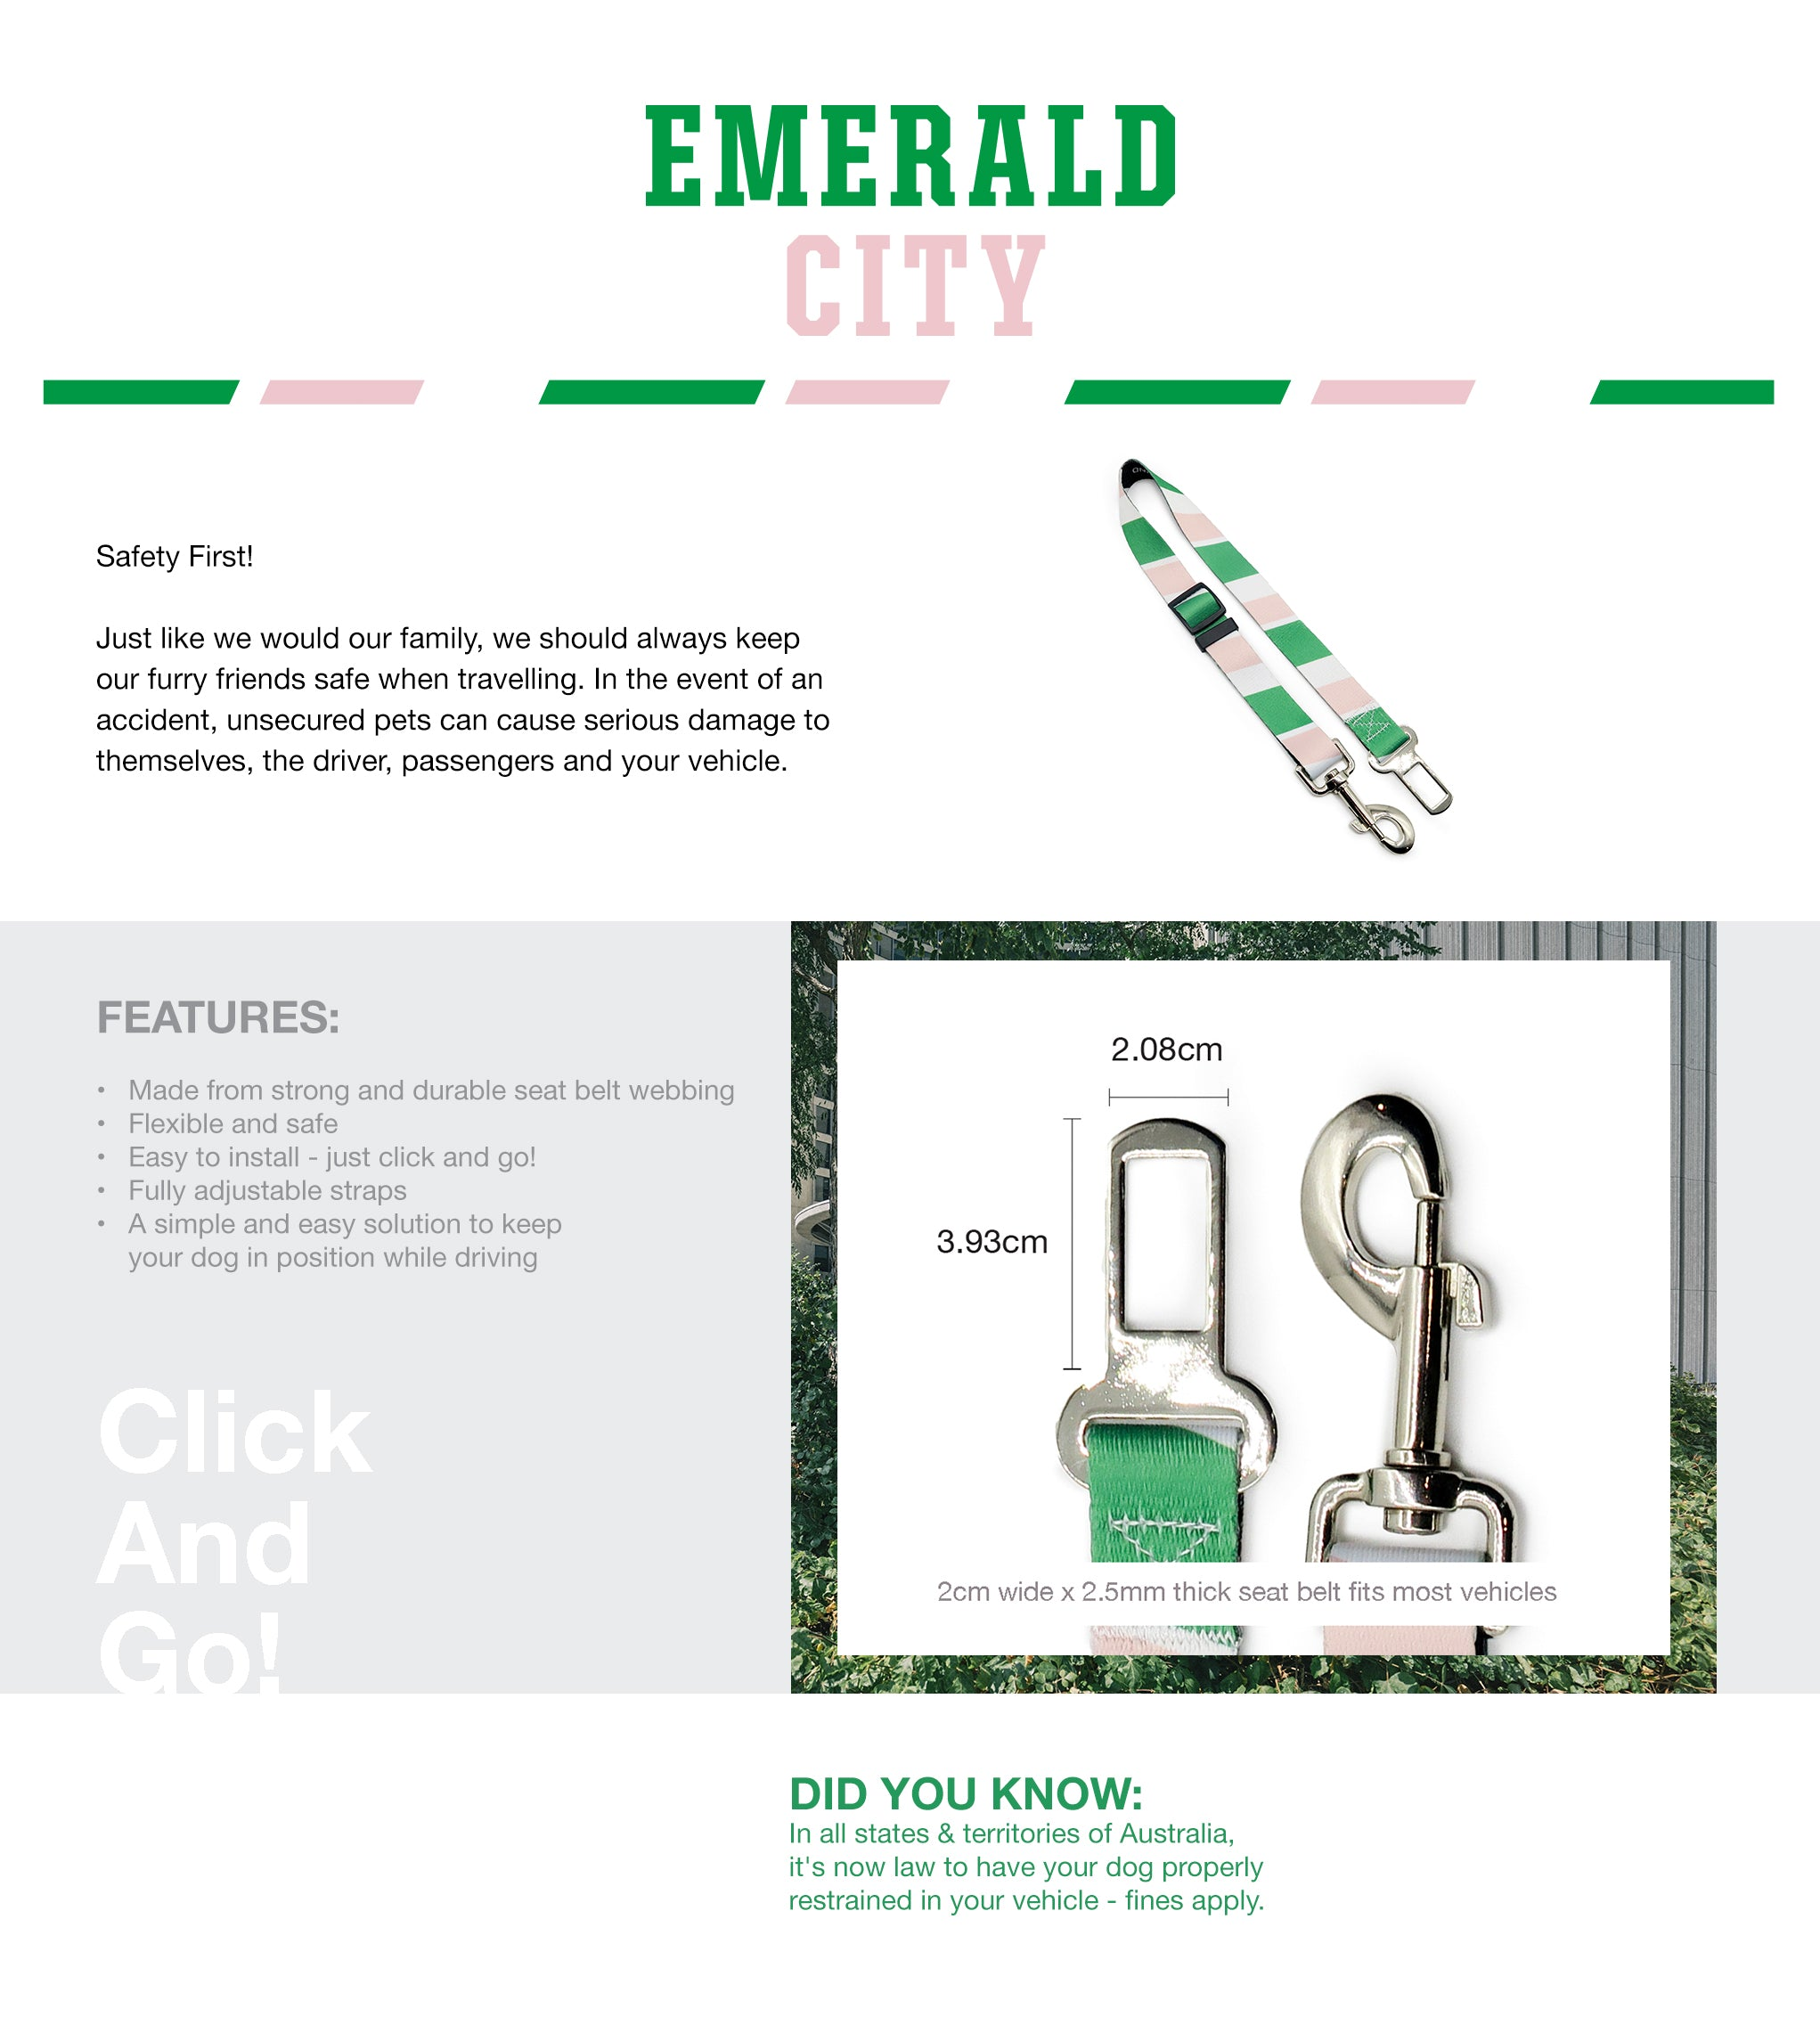 Emerald City Seat Belt